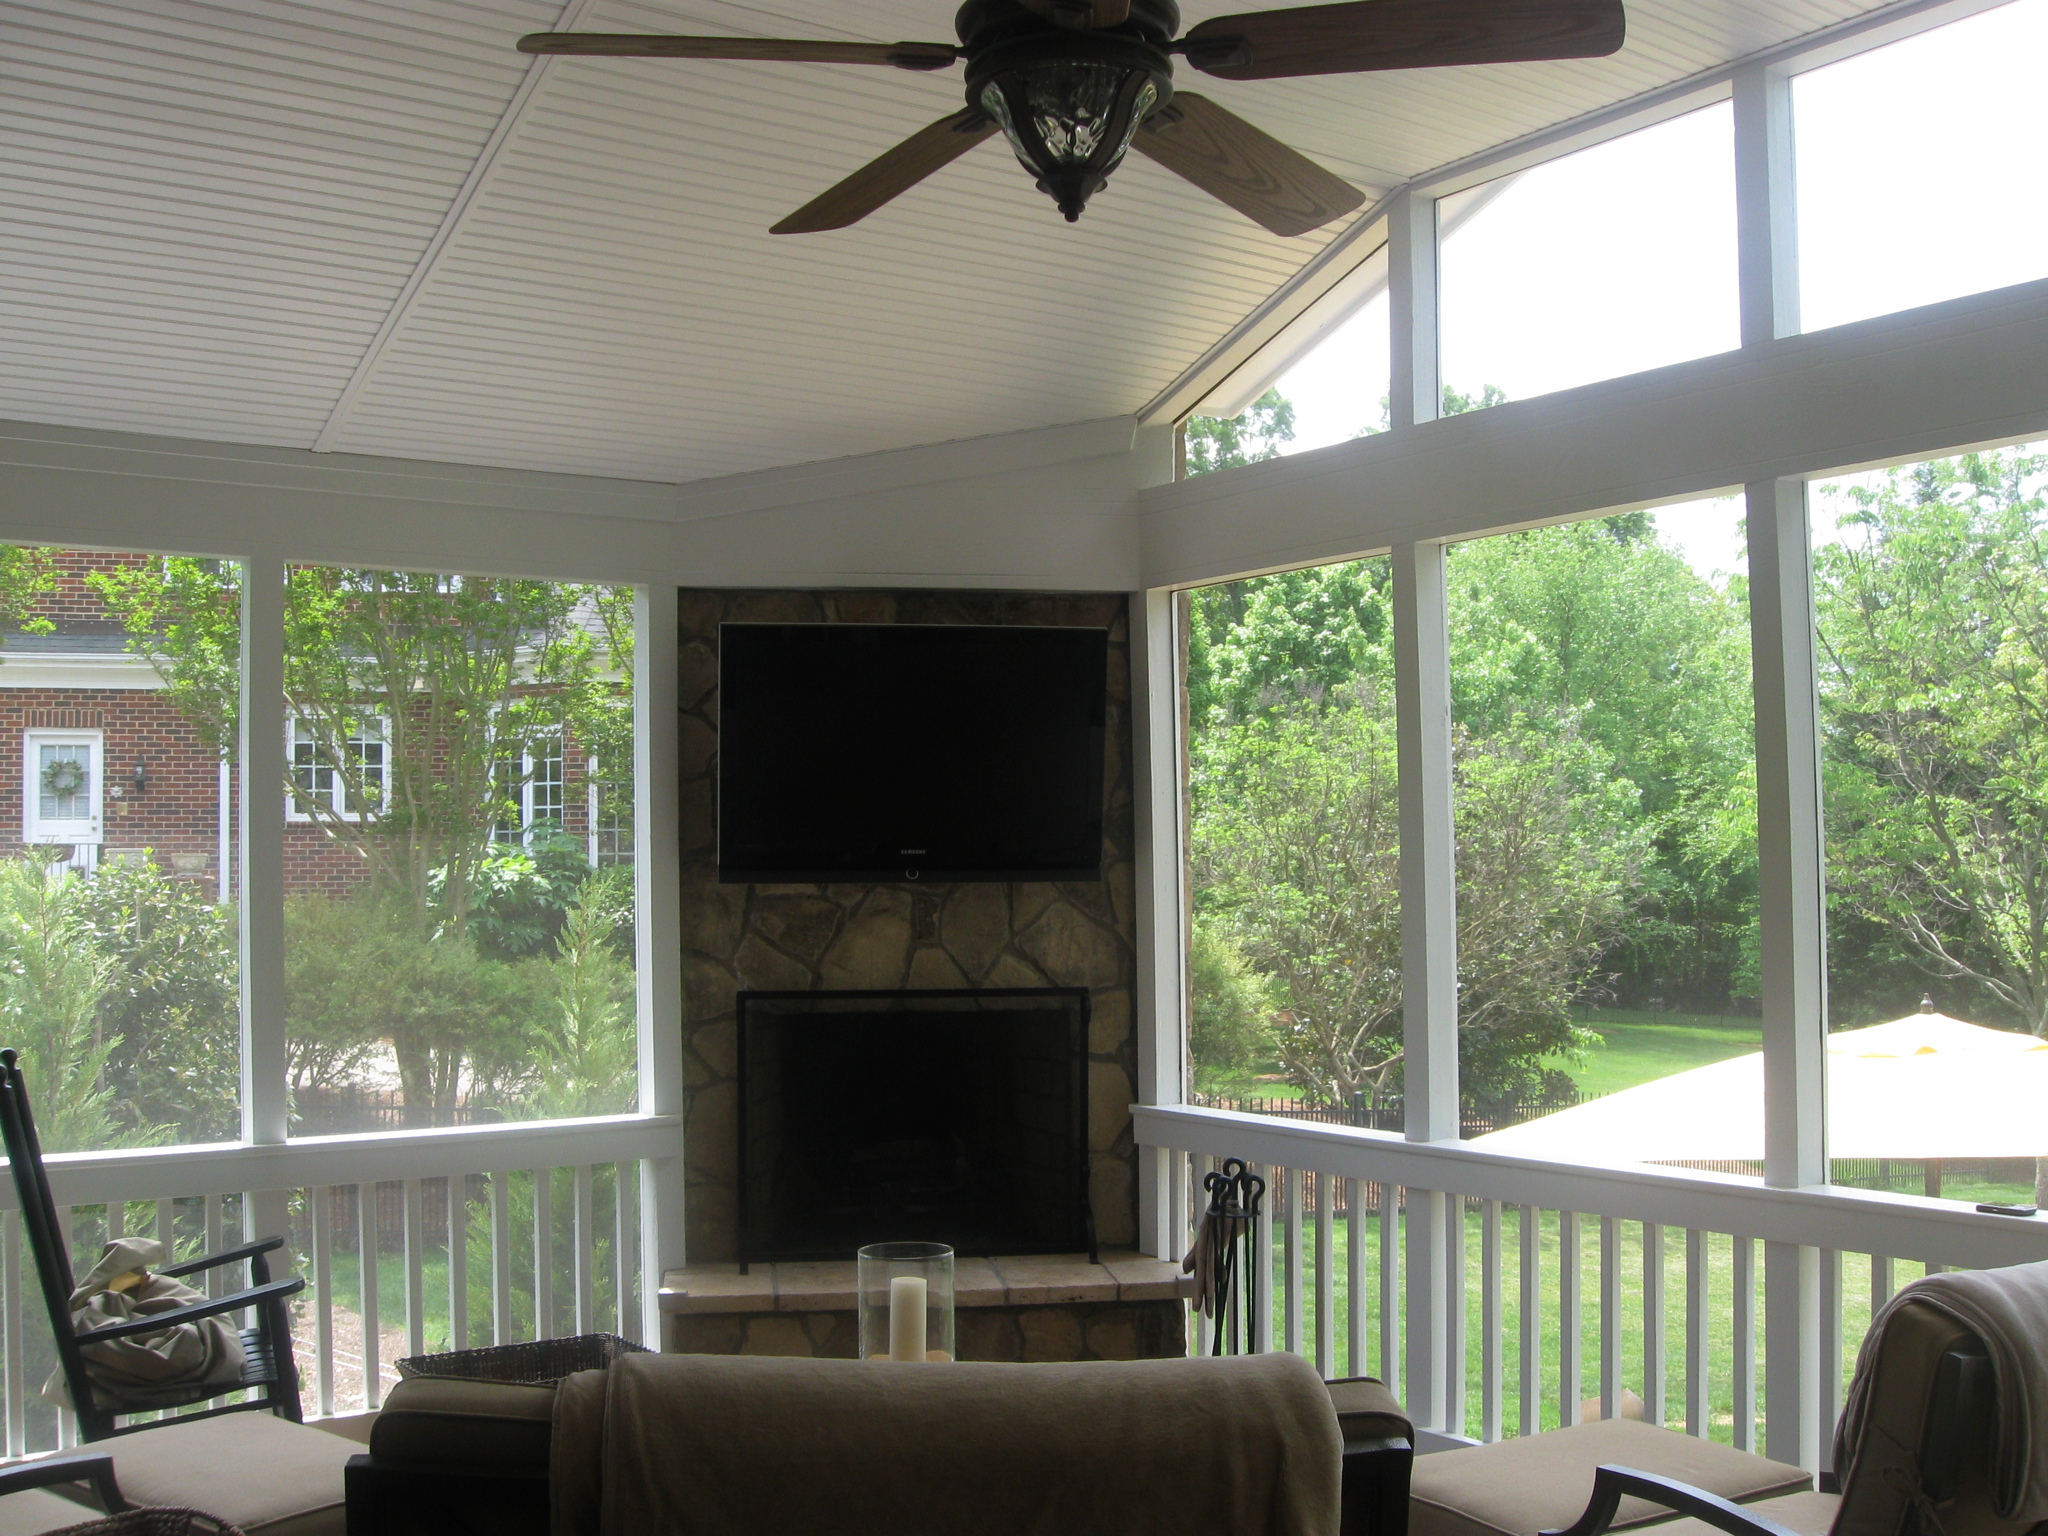 Sun Rooms And Porches With Fireplaces The Ultimate Outdoor Living Spaces A